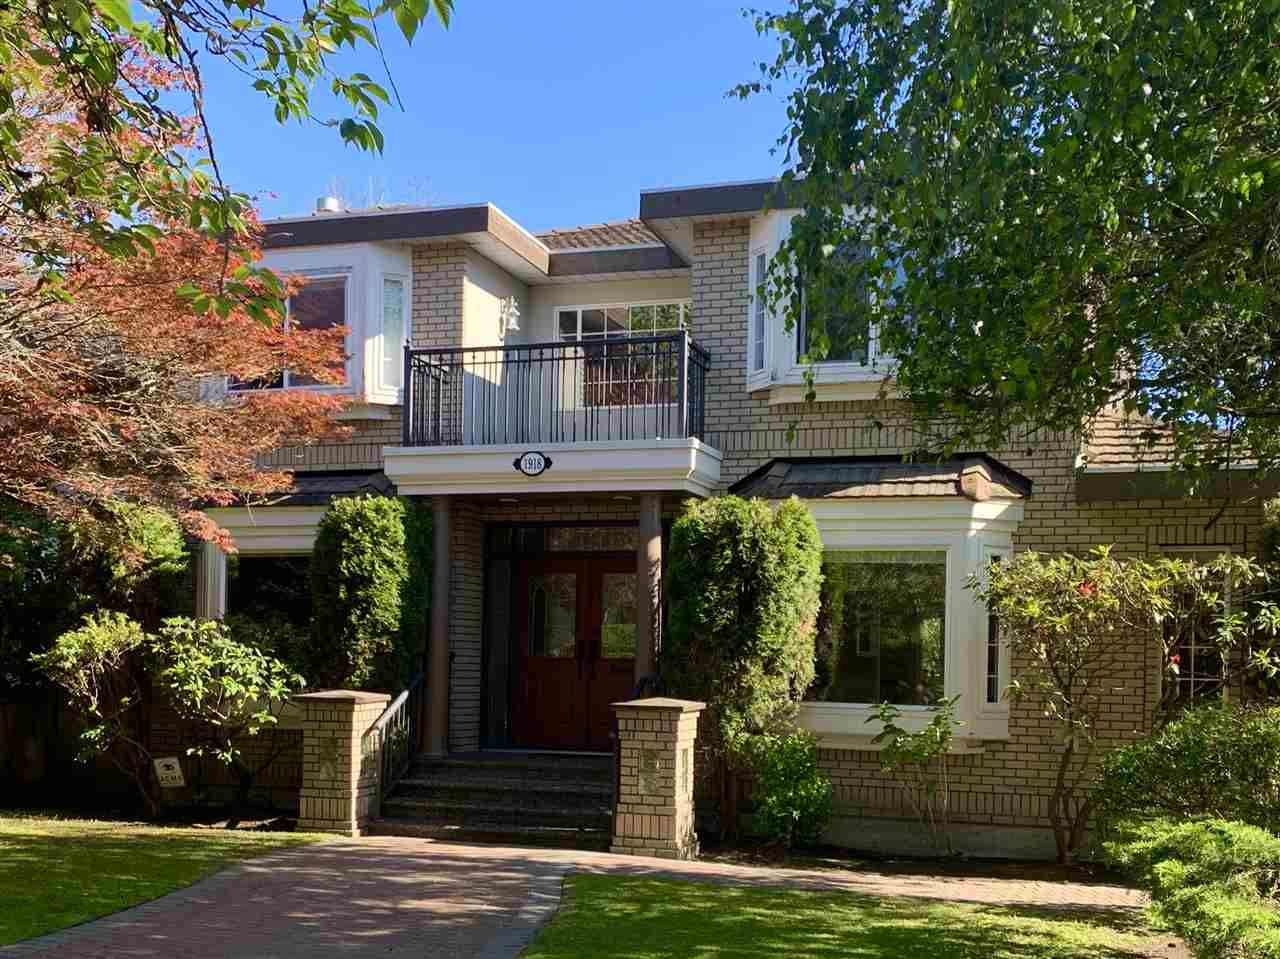 Main Photo: 1918 W 44TH Avenue in Vancouver: Kerrisdale House for sale (Vancouver West)  : MLS®# R2462762